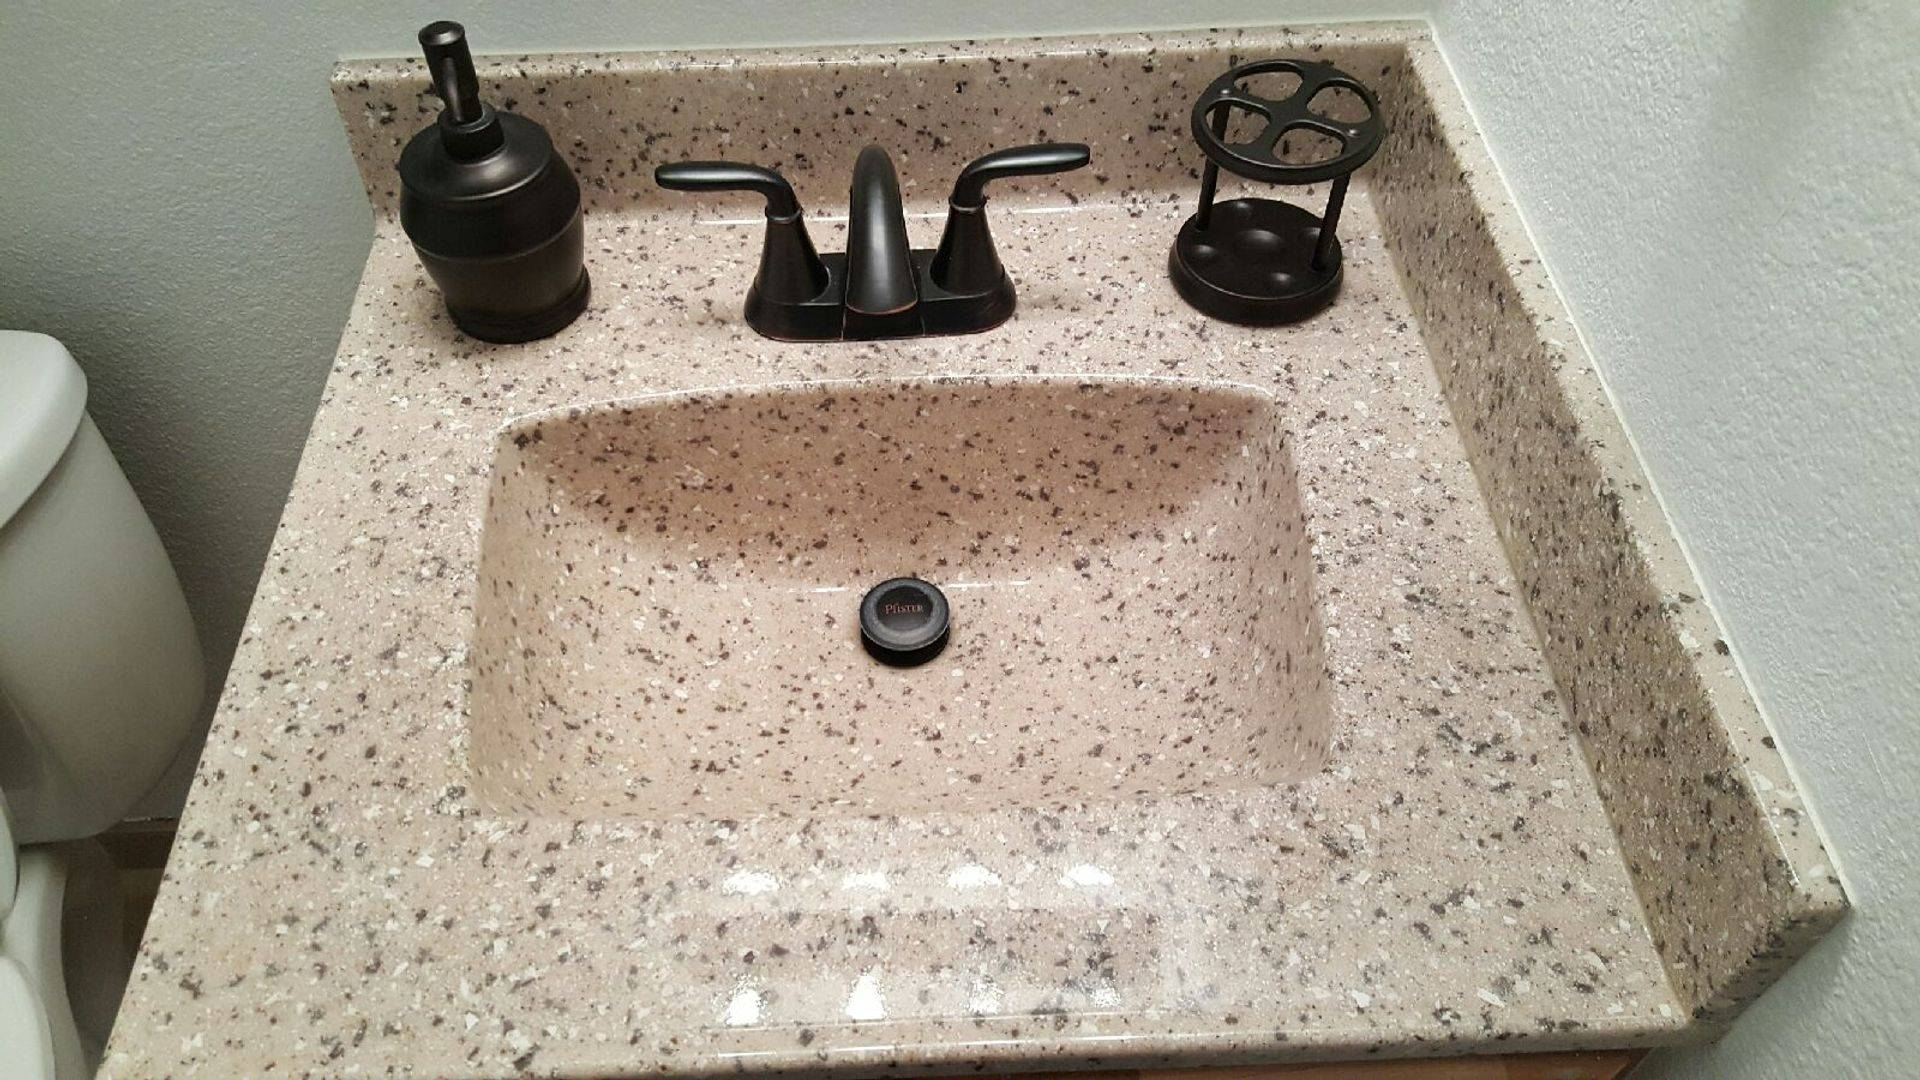 New Granite Sink